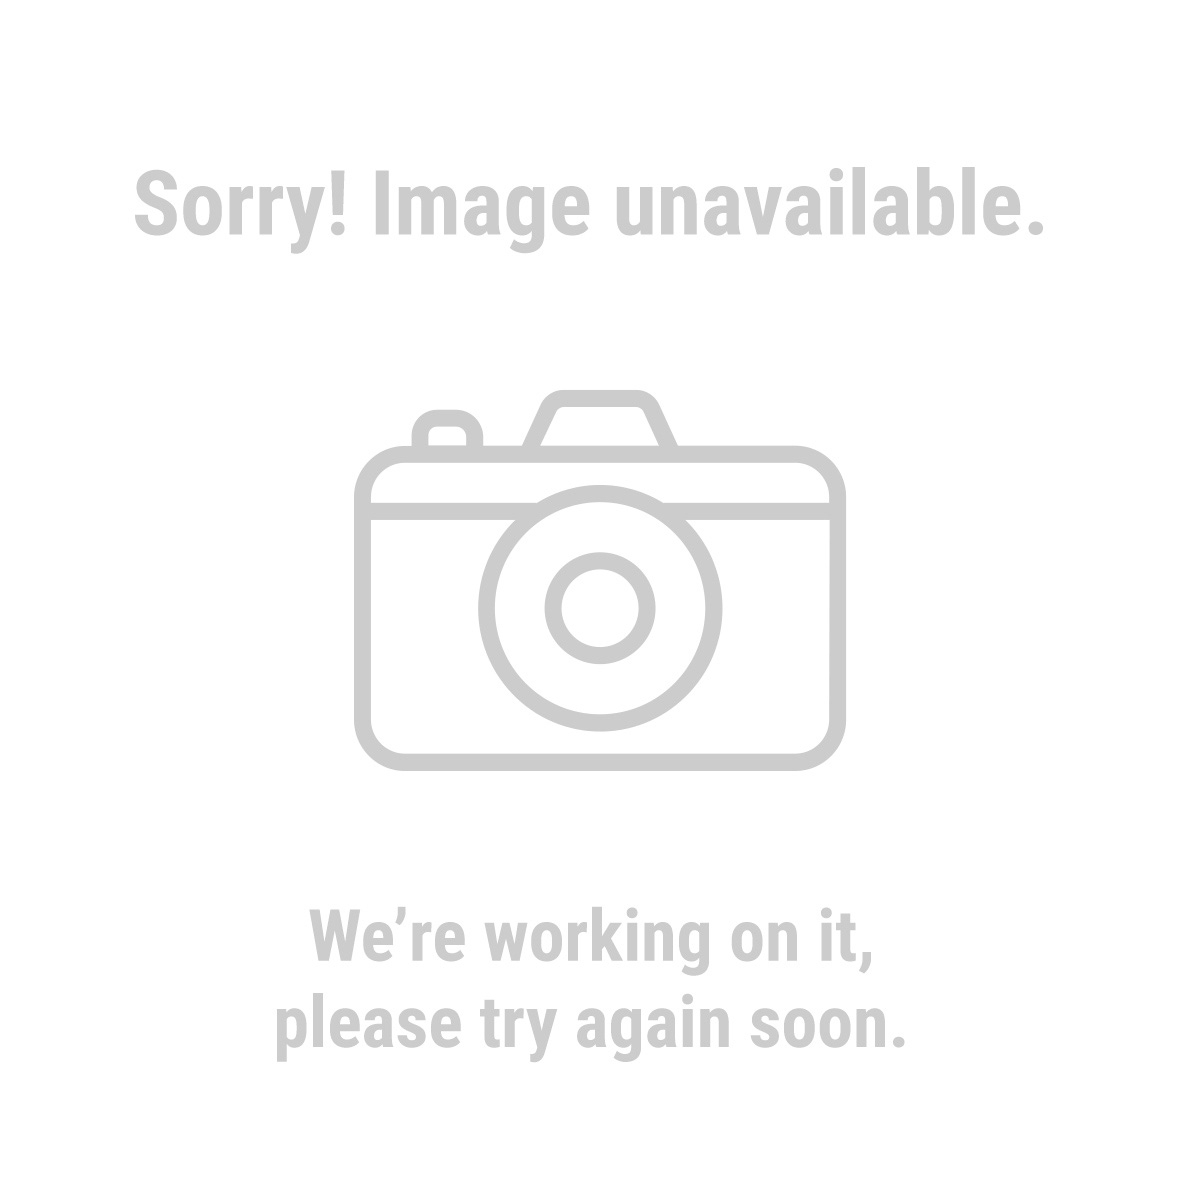 Pittsburgh® 62570 6 Pc Screwdriver Set